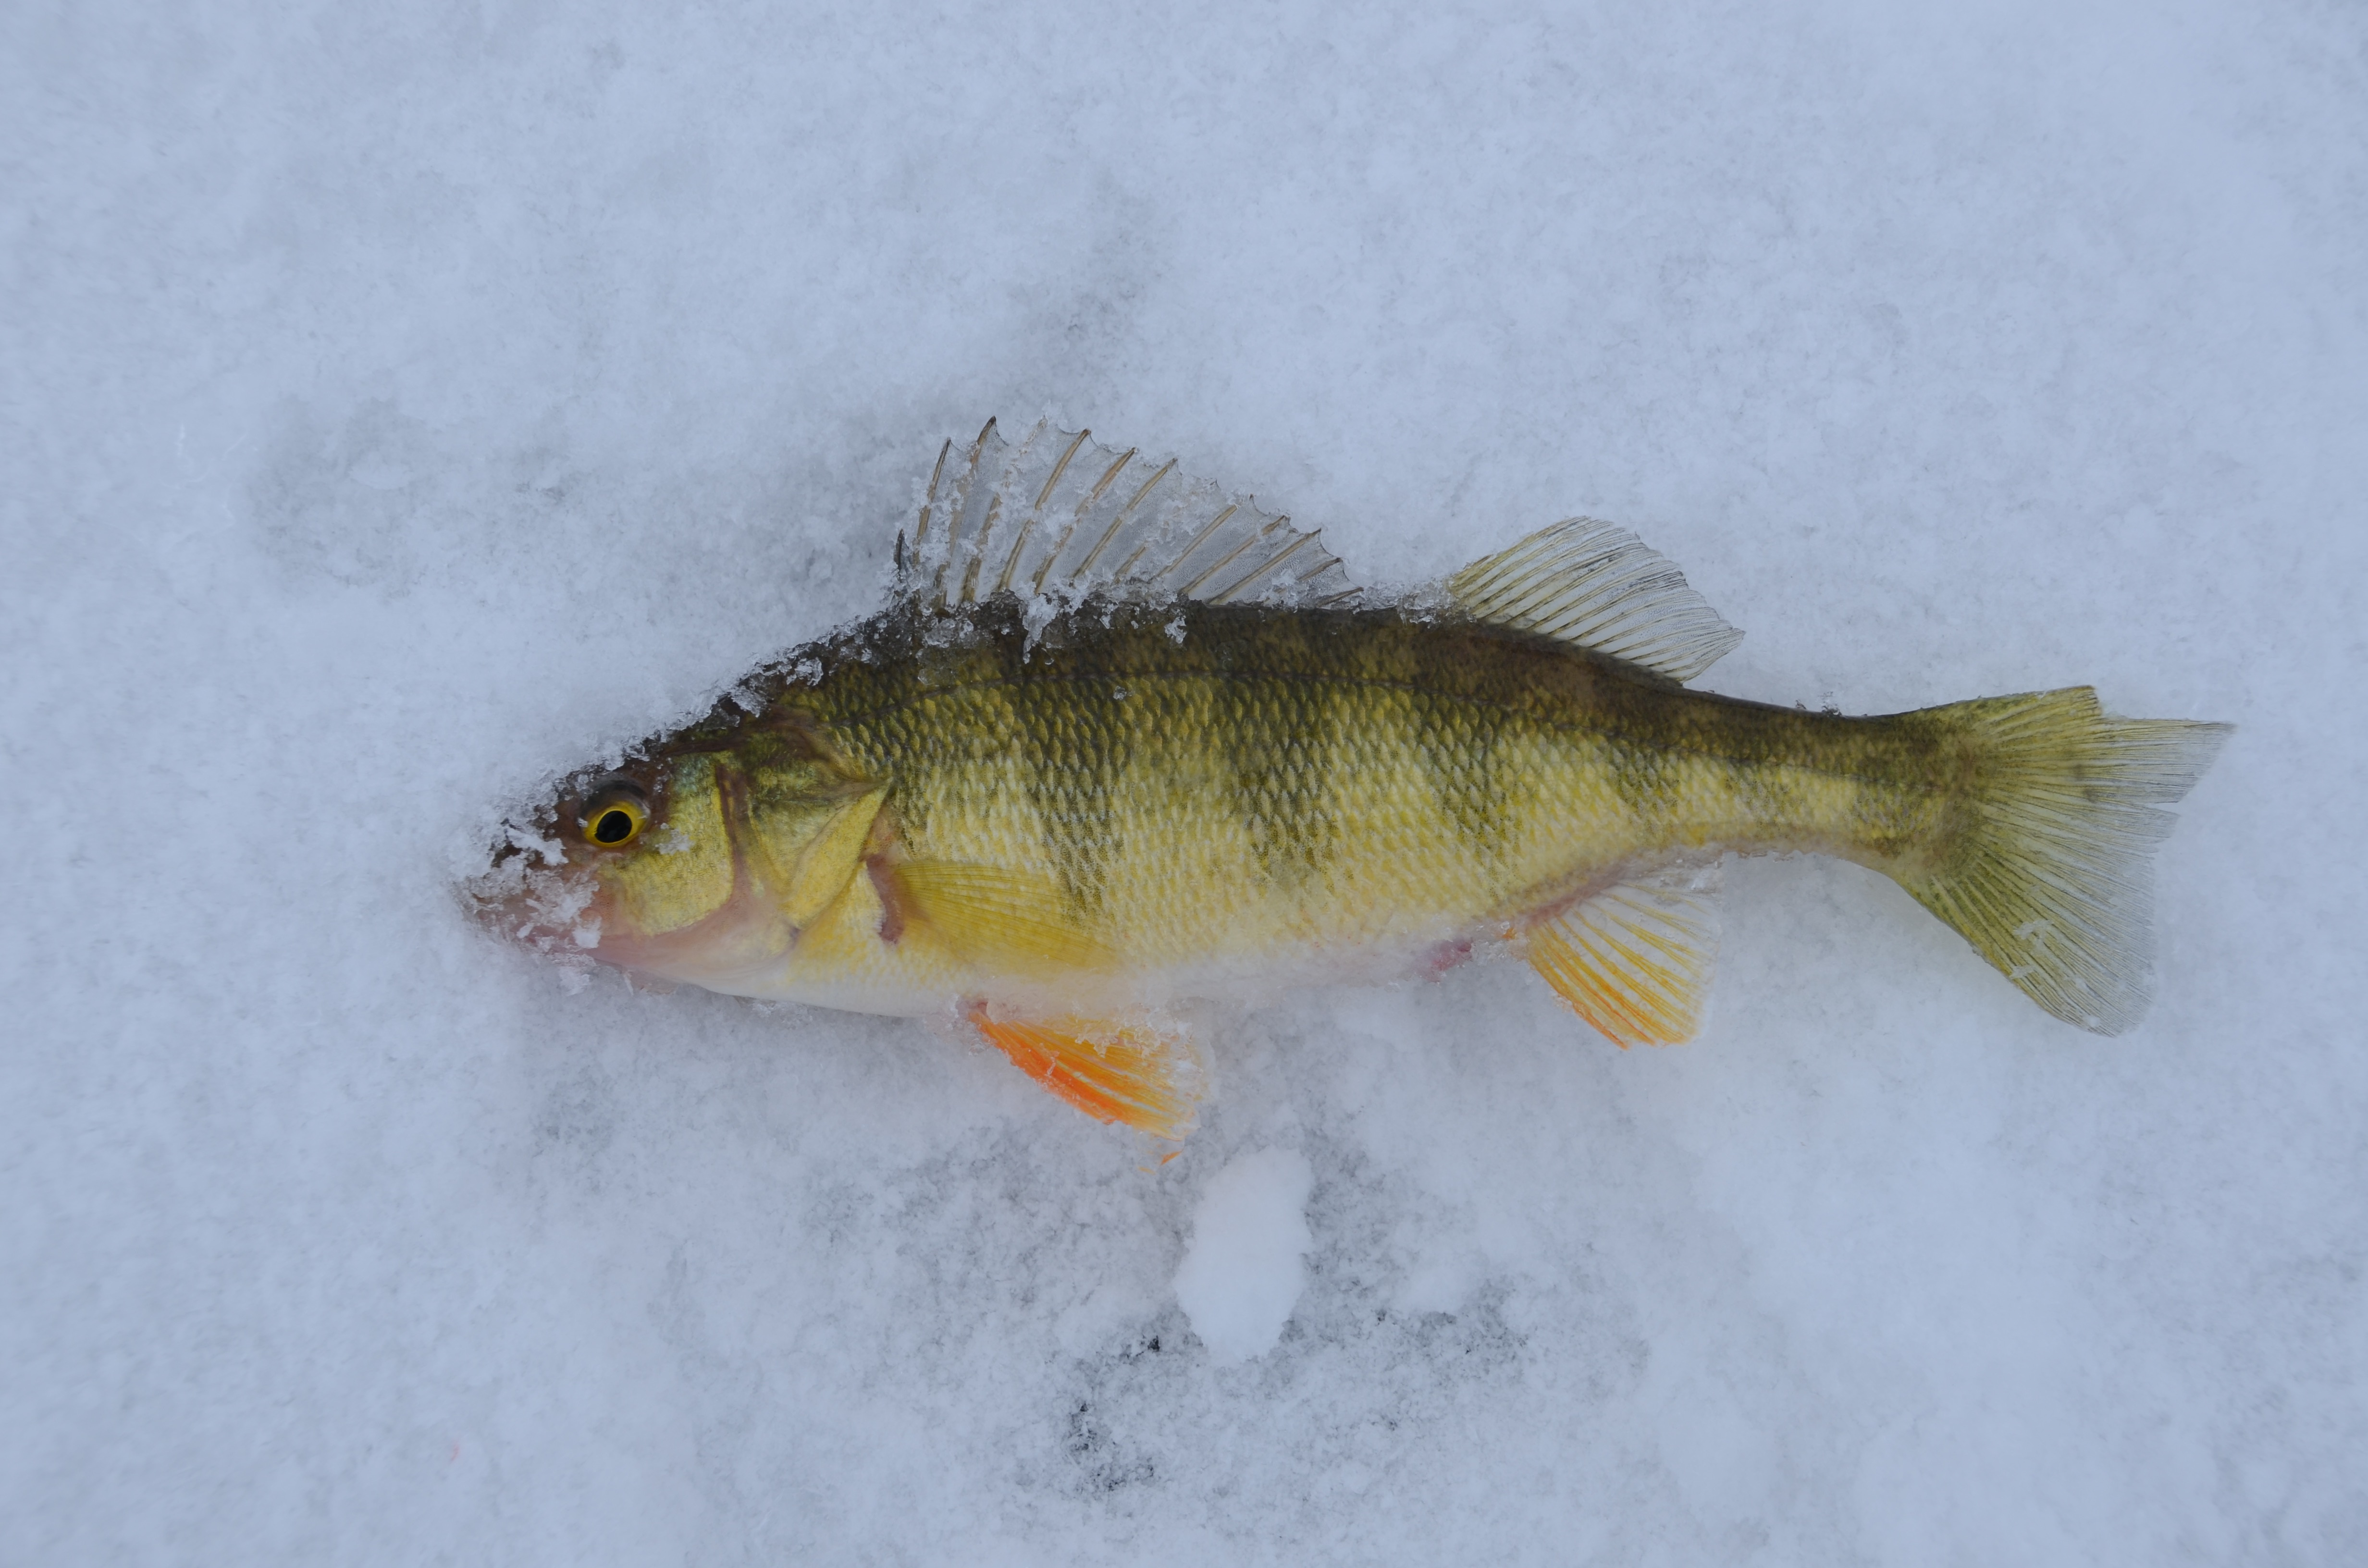 Ice fishing idaho s coolest angling opportunity idaho for Ice fishing perch lures